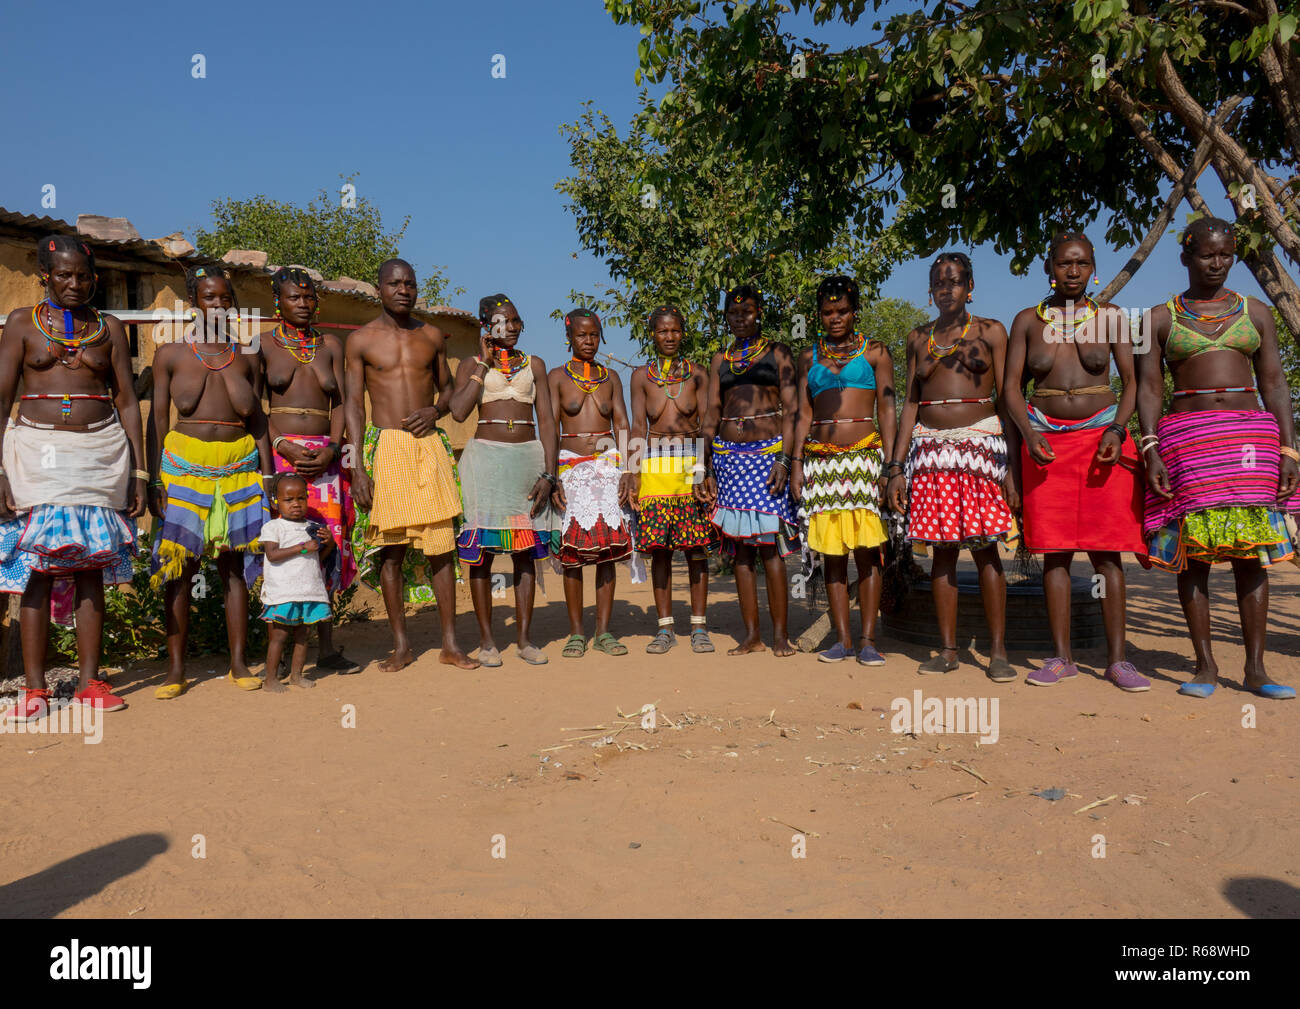 Mudimba tribe relatives with their traditional outfit in their village, Cunene Province, Cahama, Angola - Stock Image